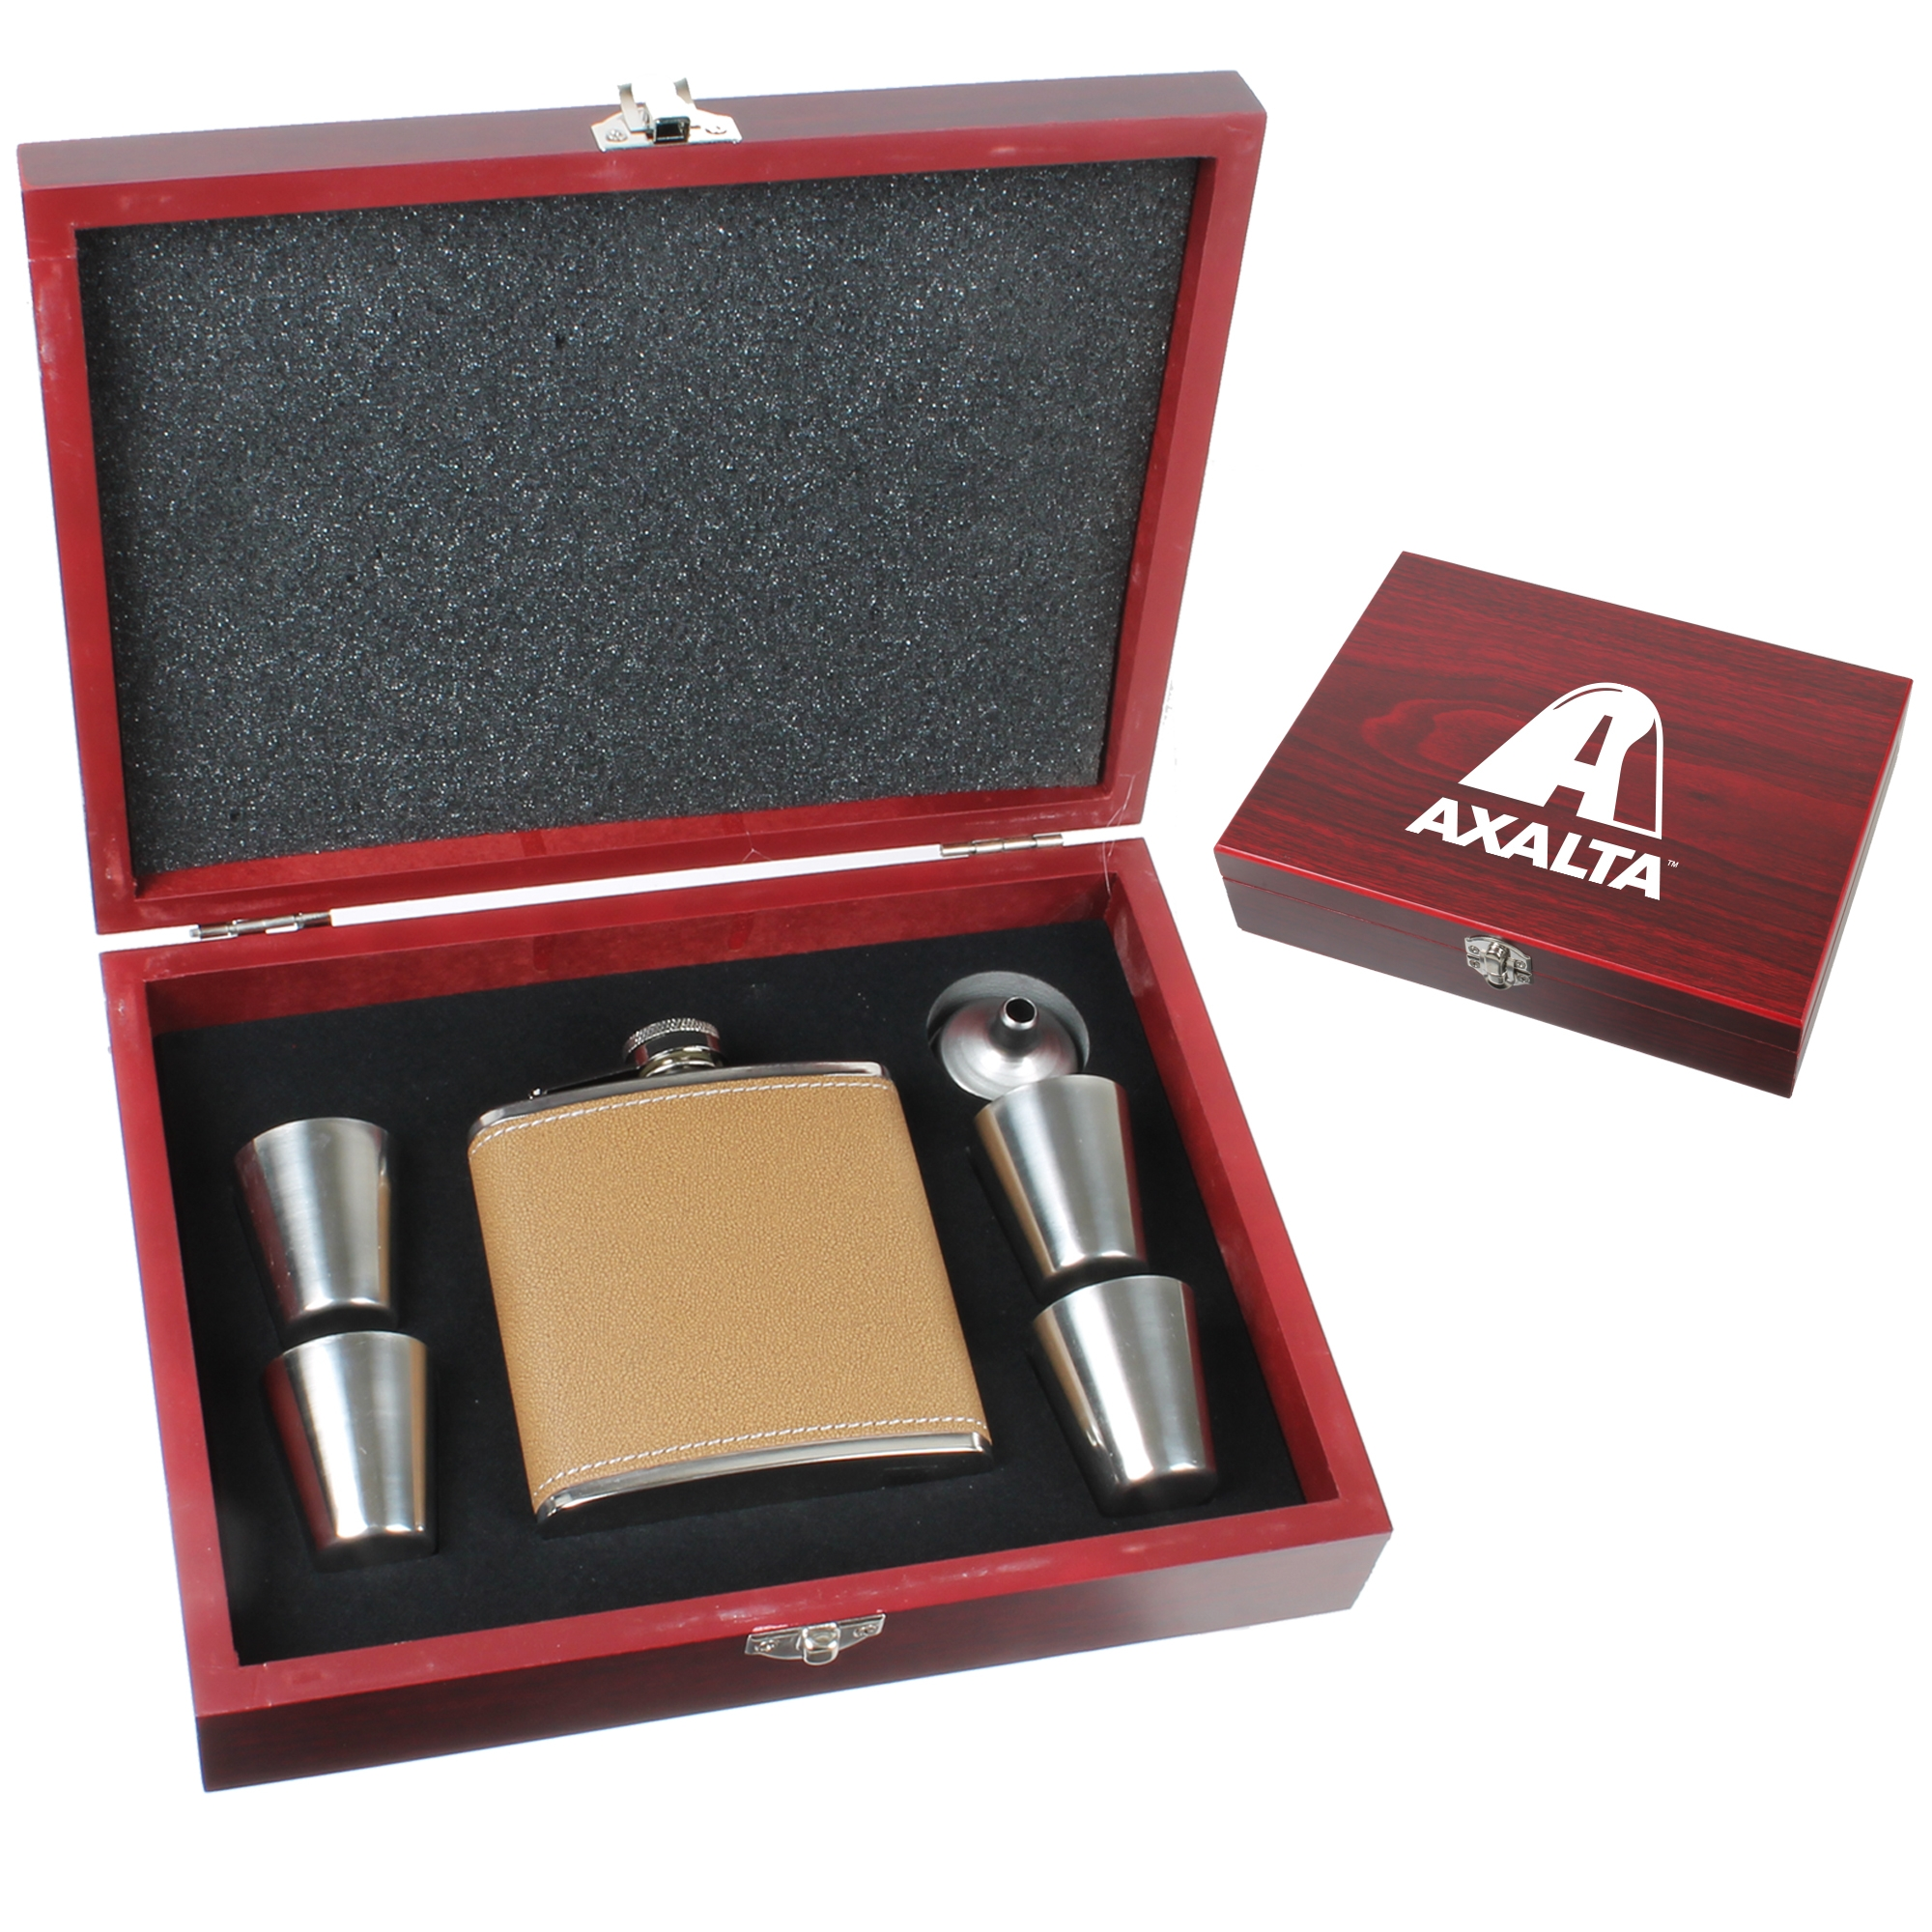 6 Oz. Flask Set